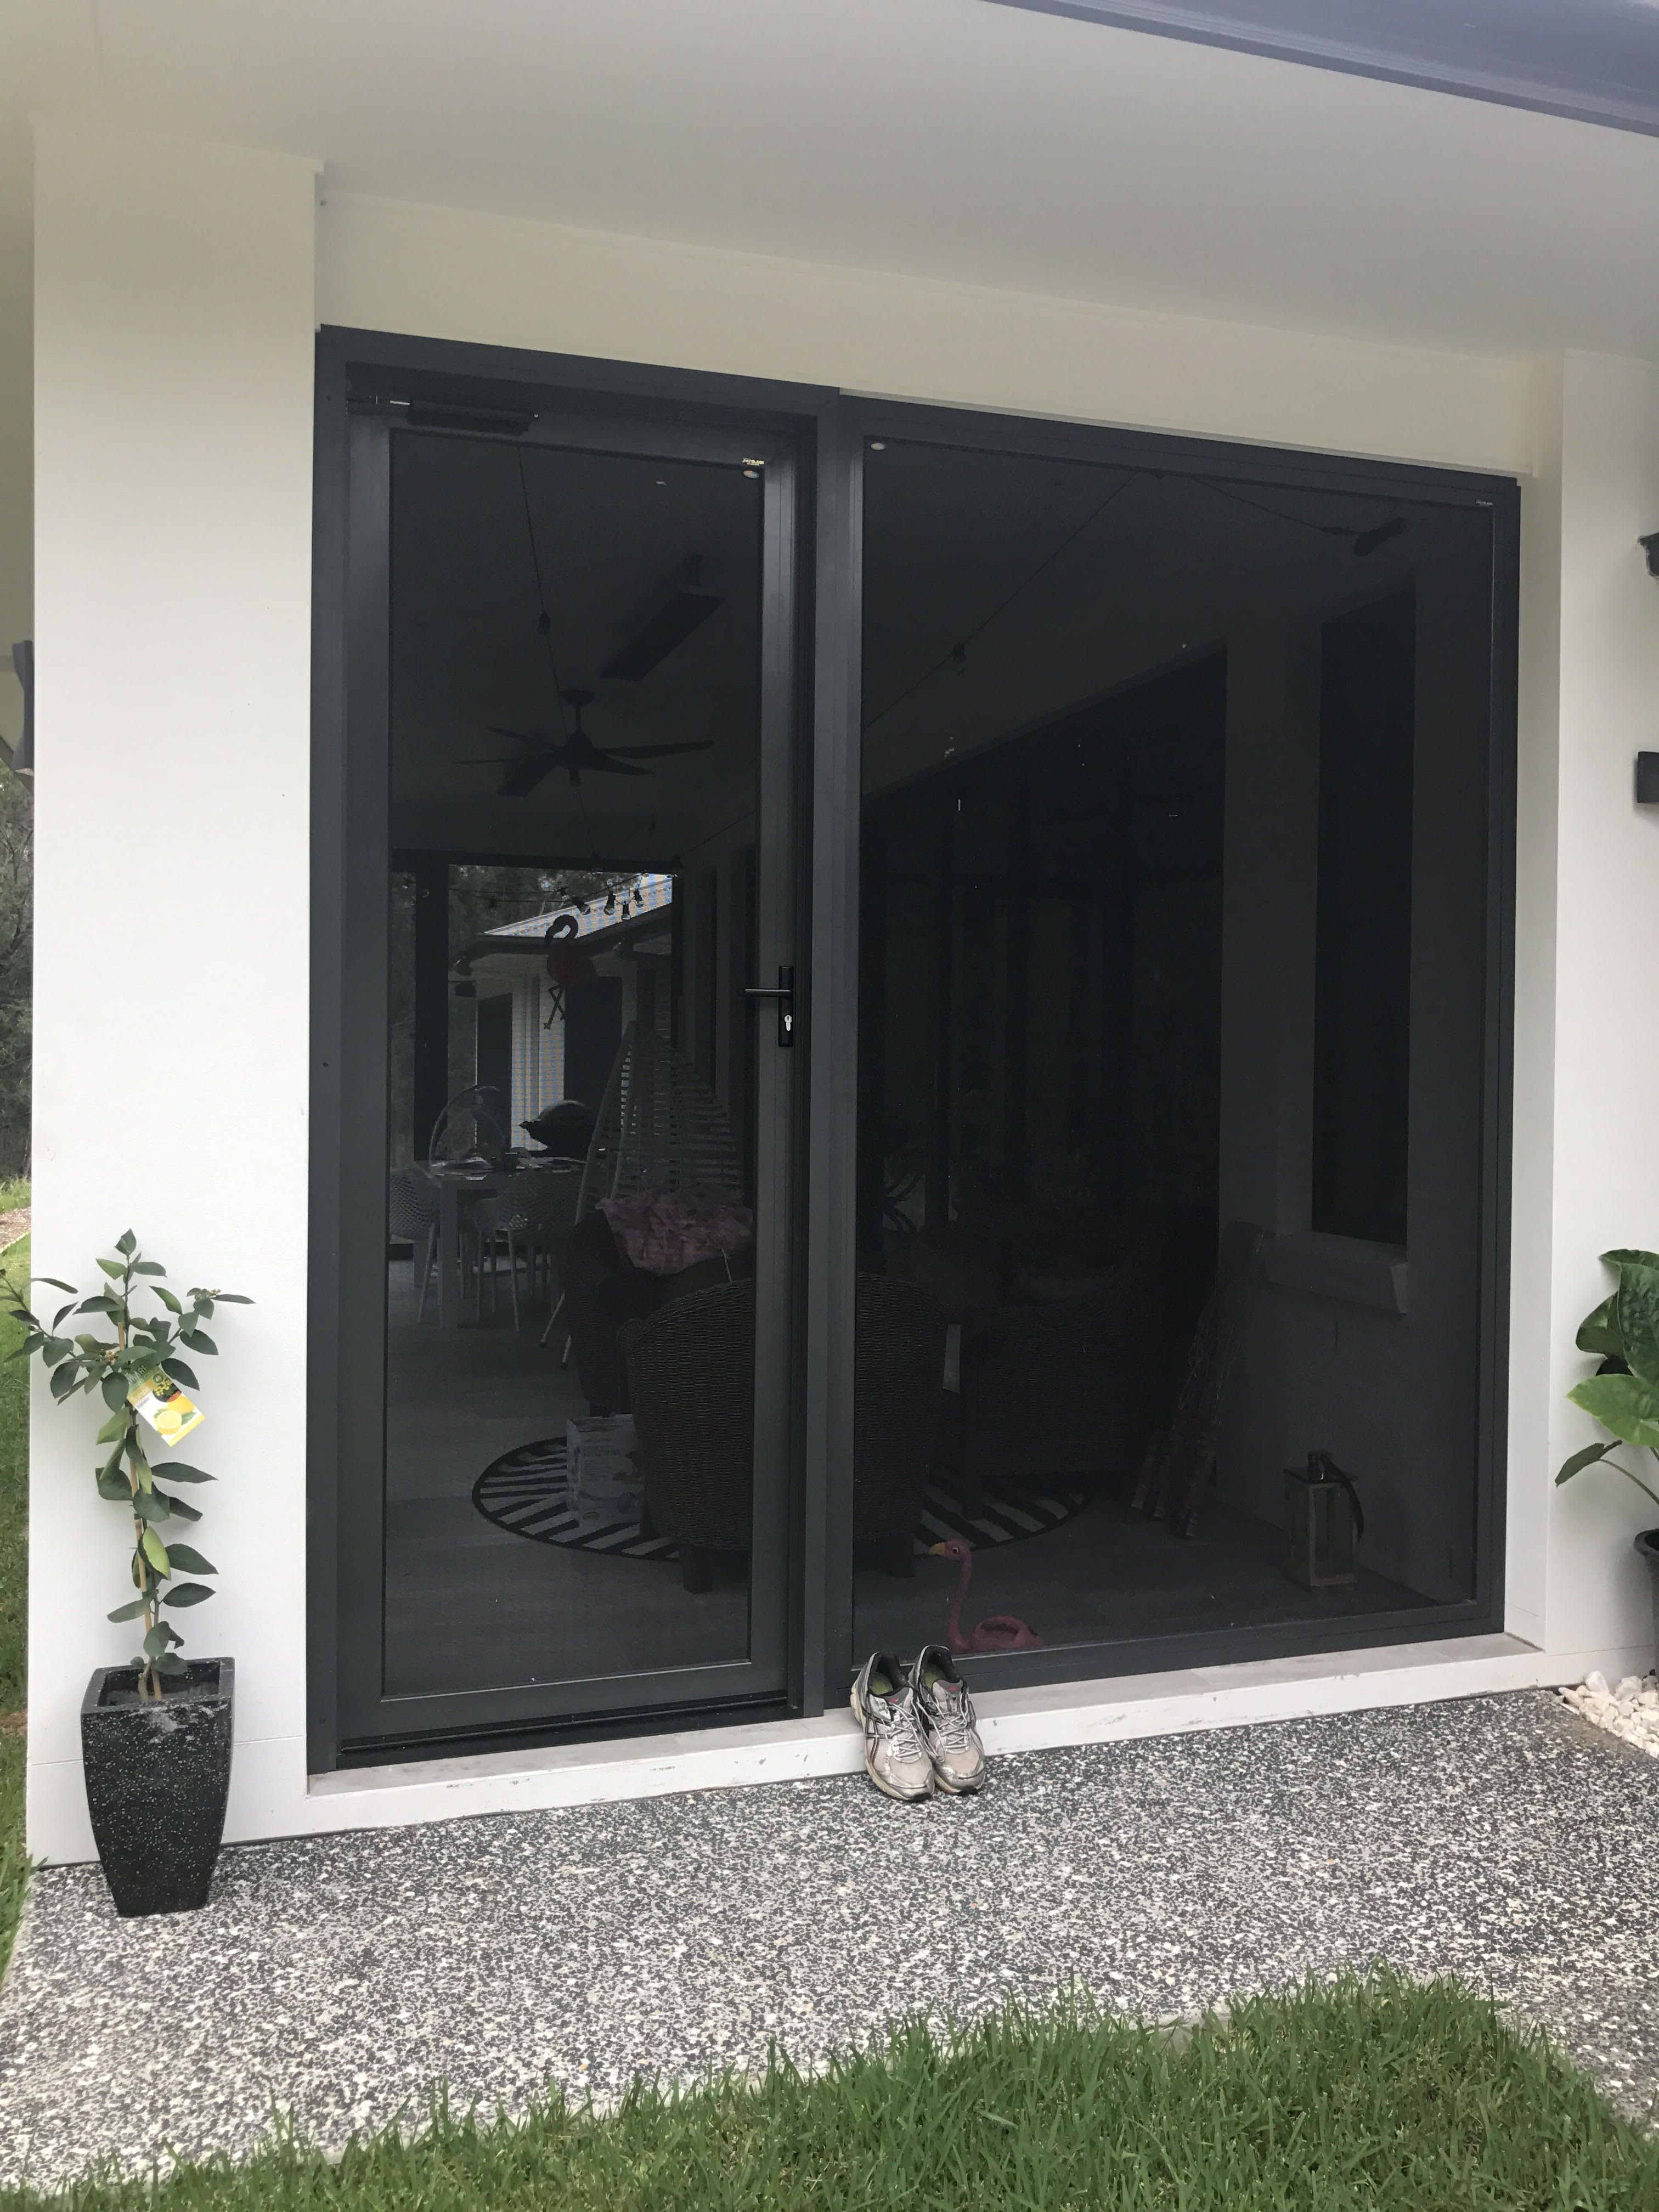 Eating Securely Anyone Standing At 2800 High These Impressive Panels Of Crimsafe Ultimate Series Screening Glass And Aluminium Patio Enclosures Alfresco Area